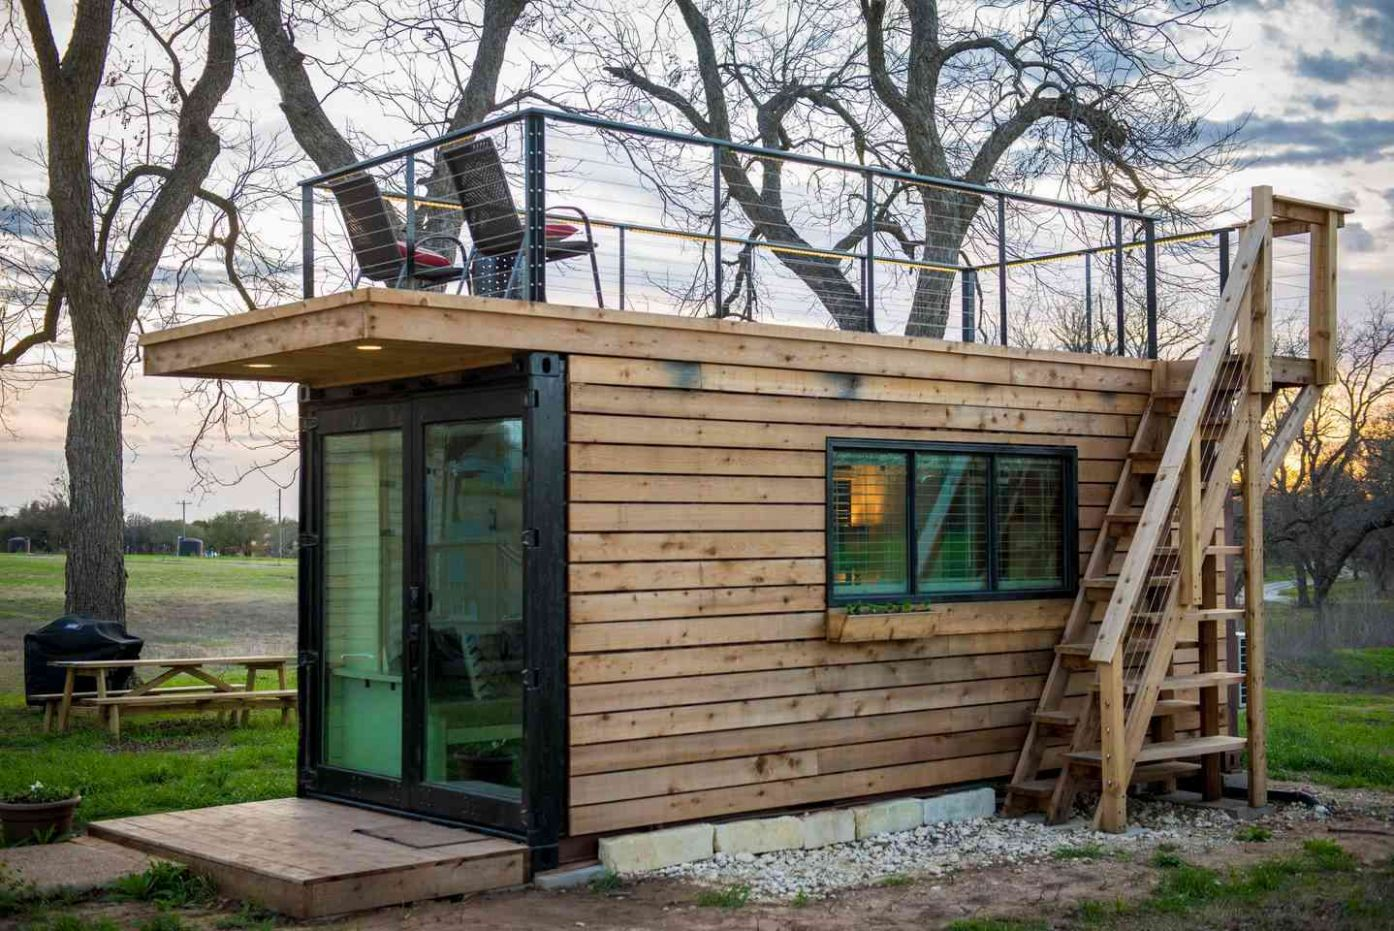 8 Tiny Houses for Rent on Airbnb That Make It Easy to See the World